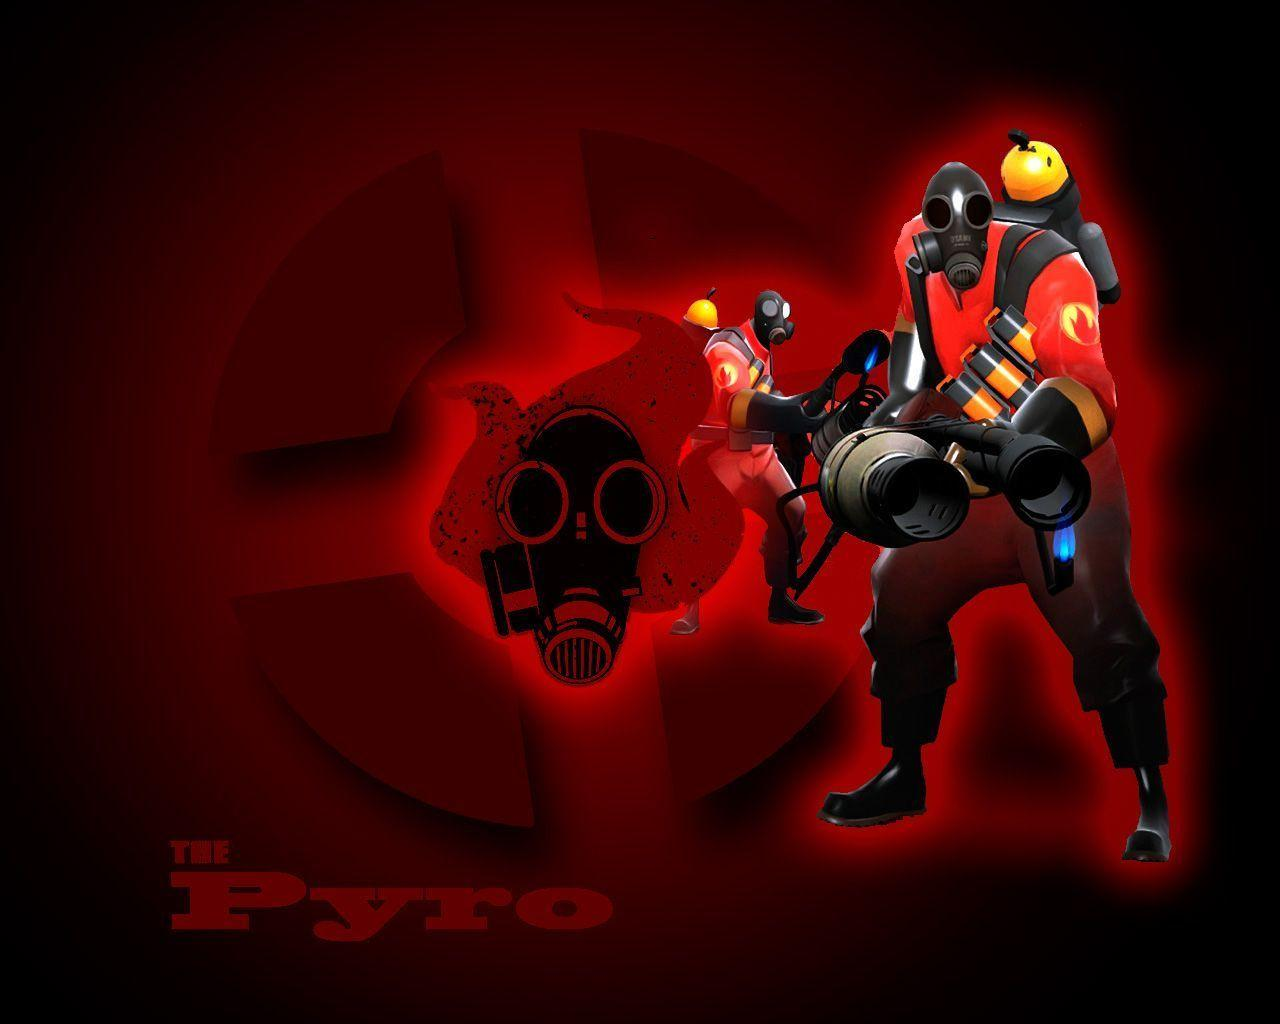 Tf2 meet the pyro wallpaper